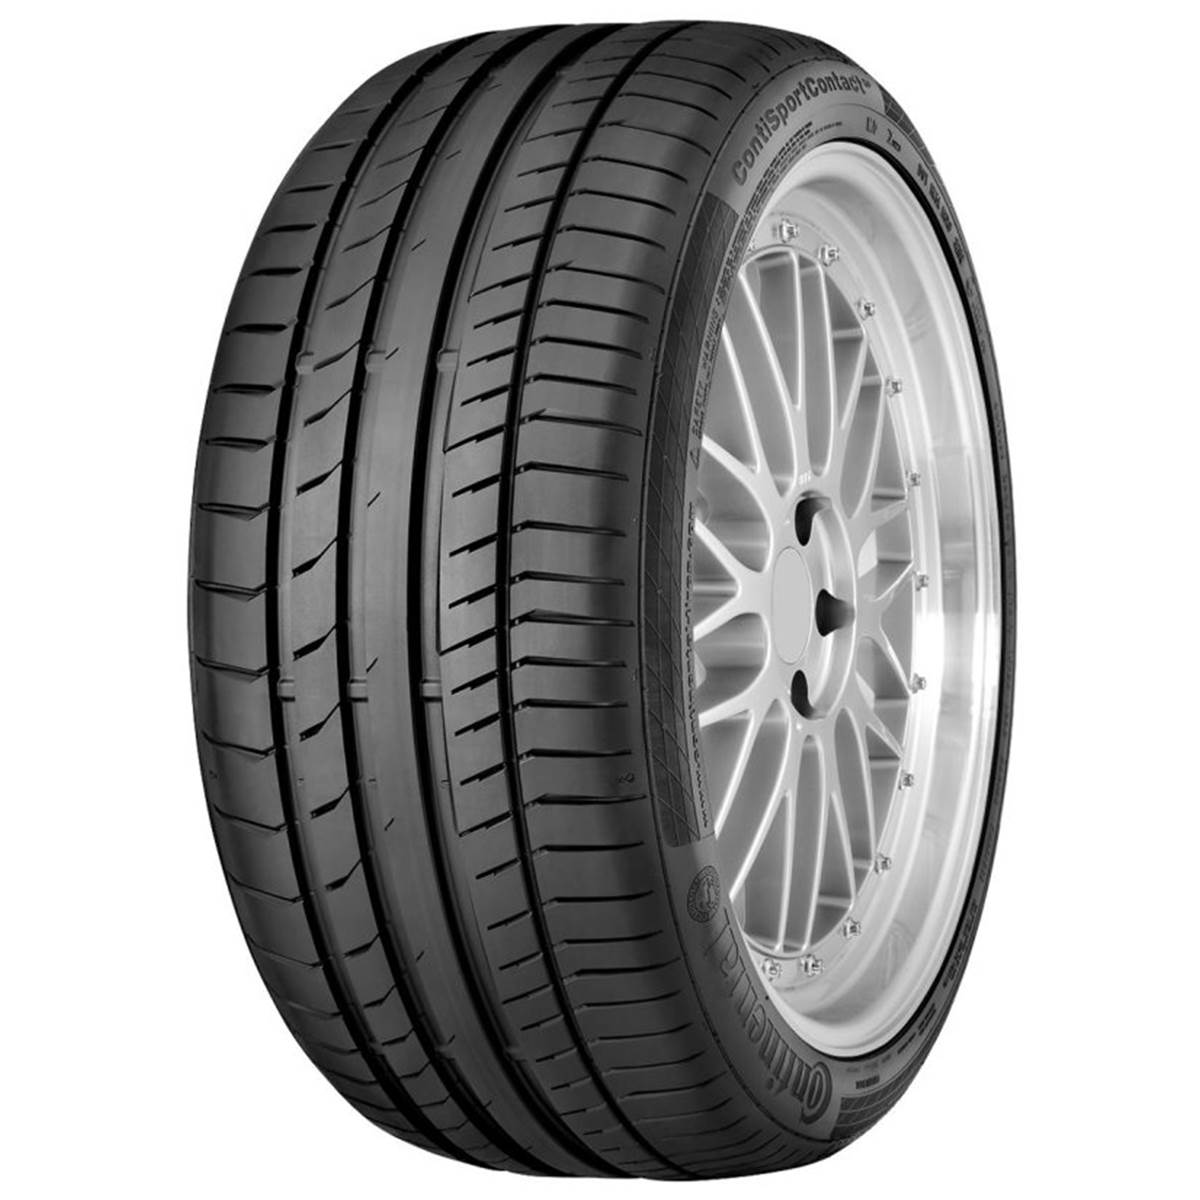 Continental Conti Sportcontact 5 Mgt / Fuel Efficiency: E, Wet Grip: A, Ext. Rolling Noise: 72db, Rolling Noise Class: B